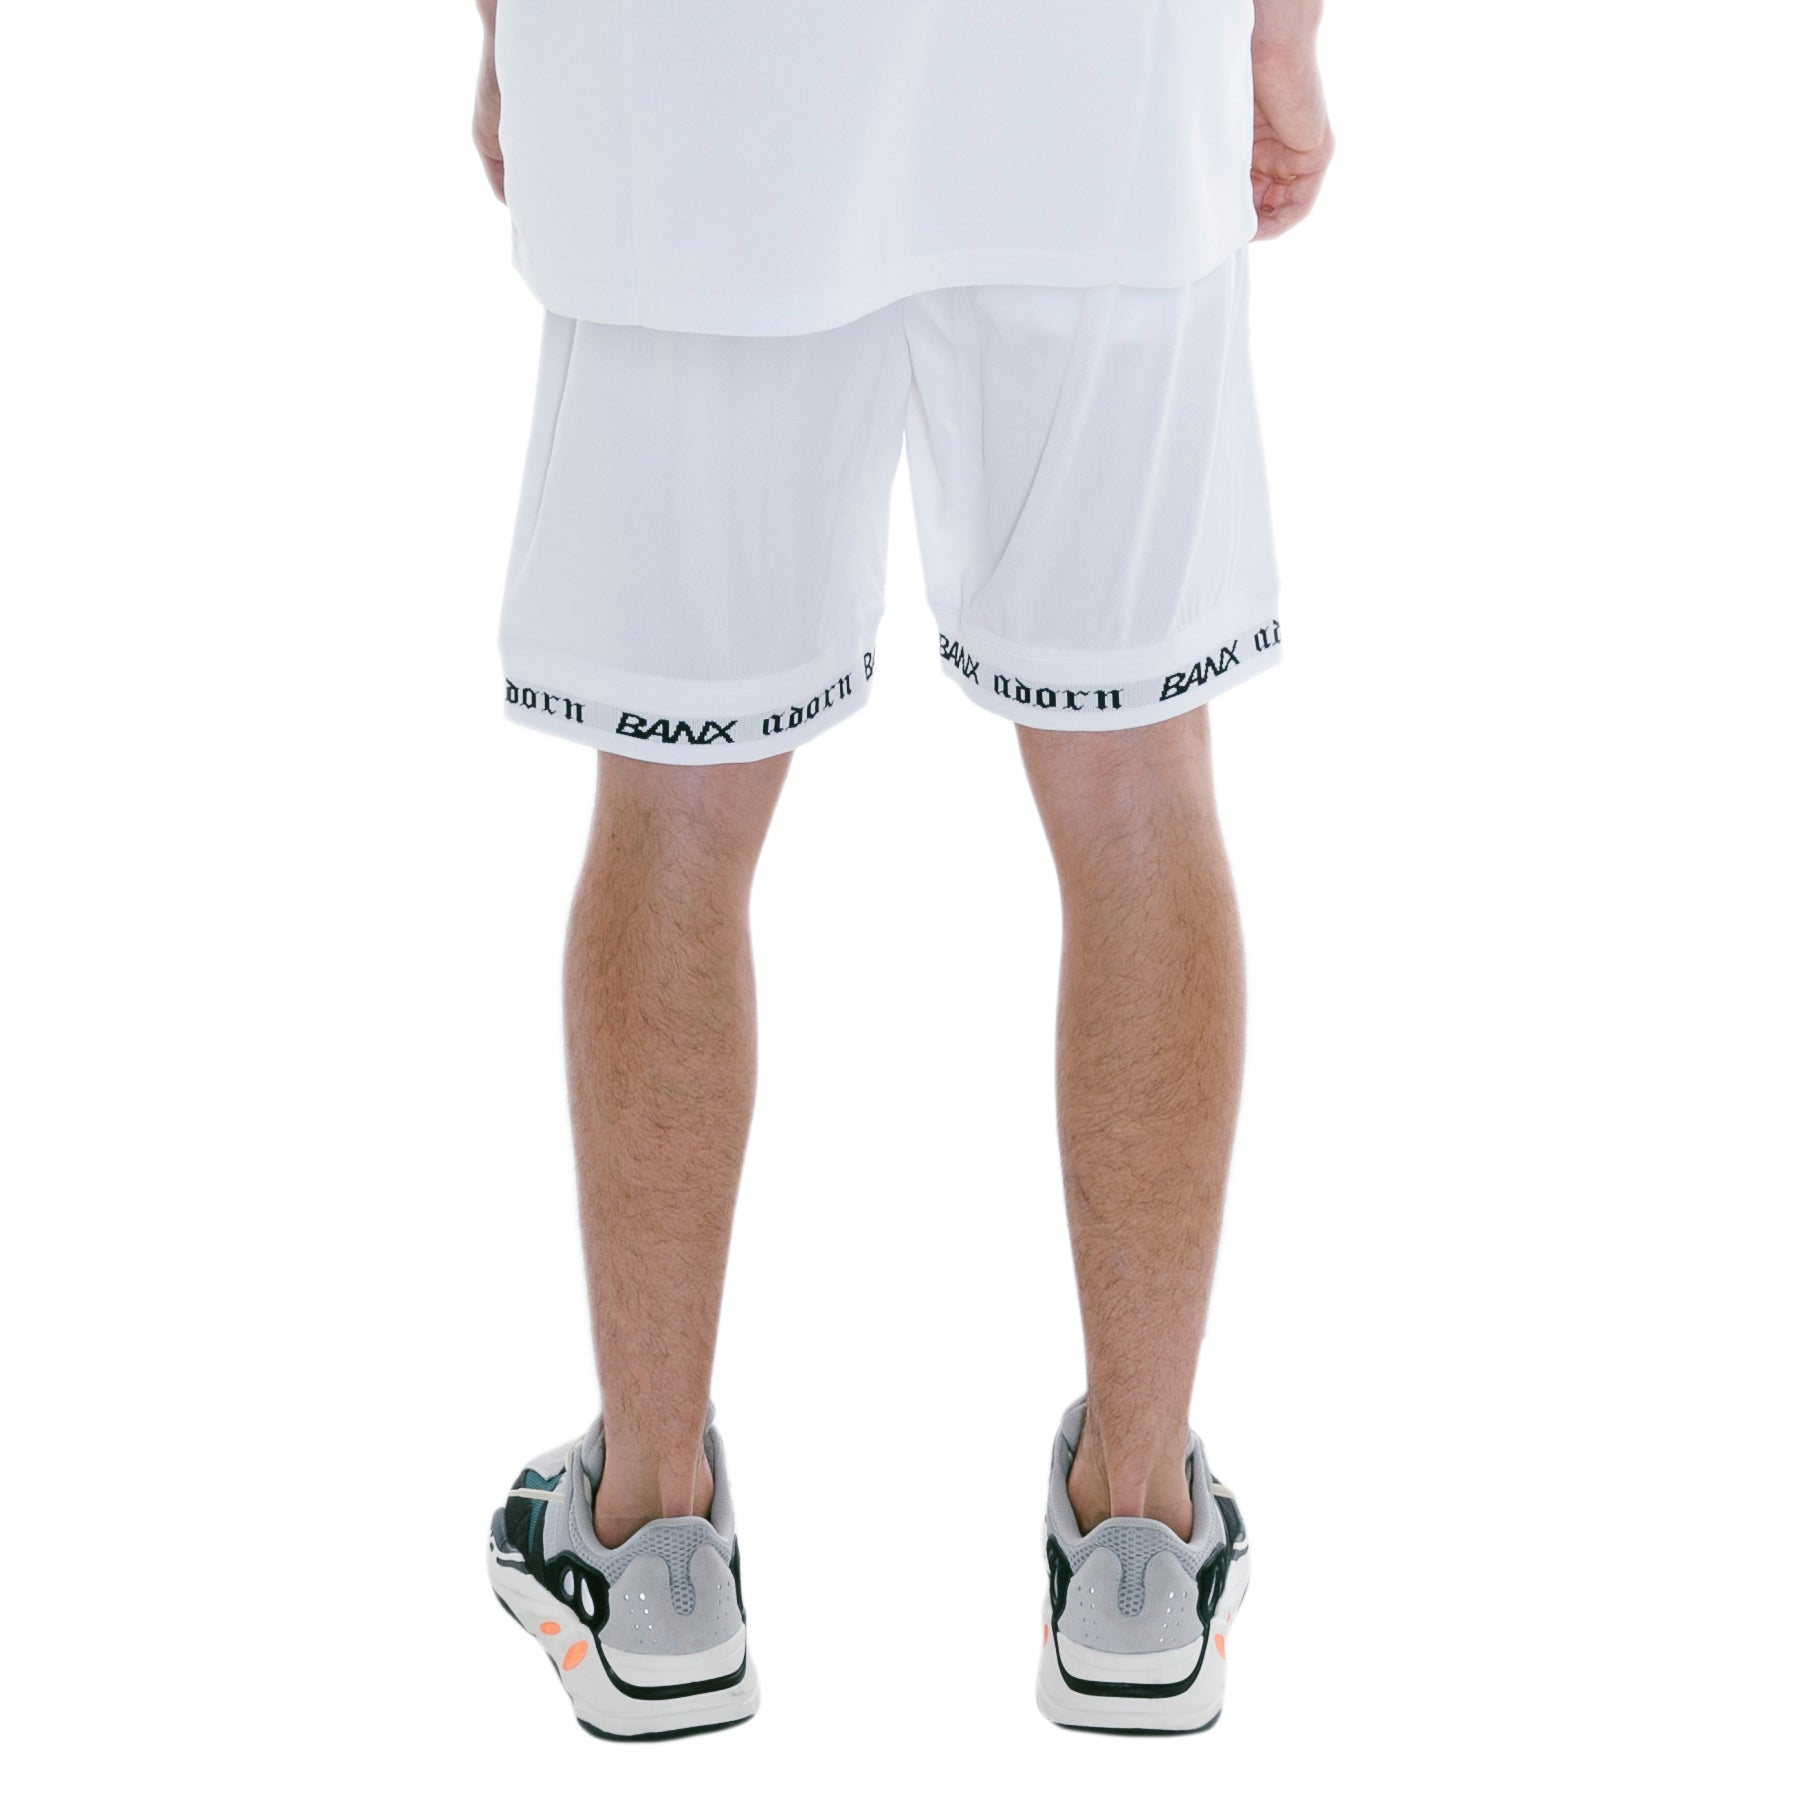 ADORN X BANX SHORTS WHITE